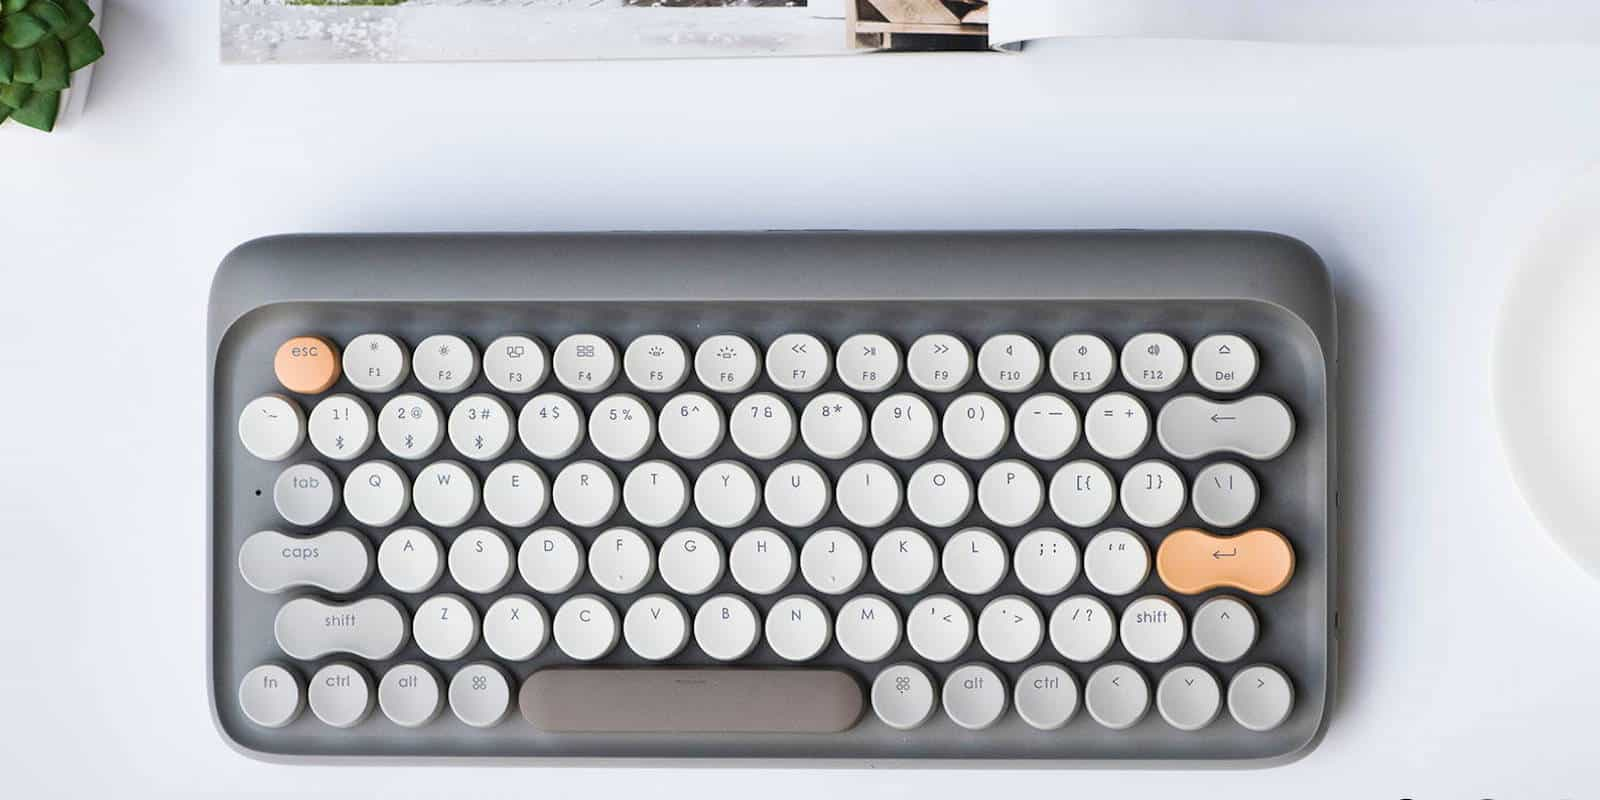 Get the feel of a classic mechanical keyboard under your fingers again.